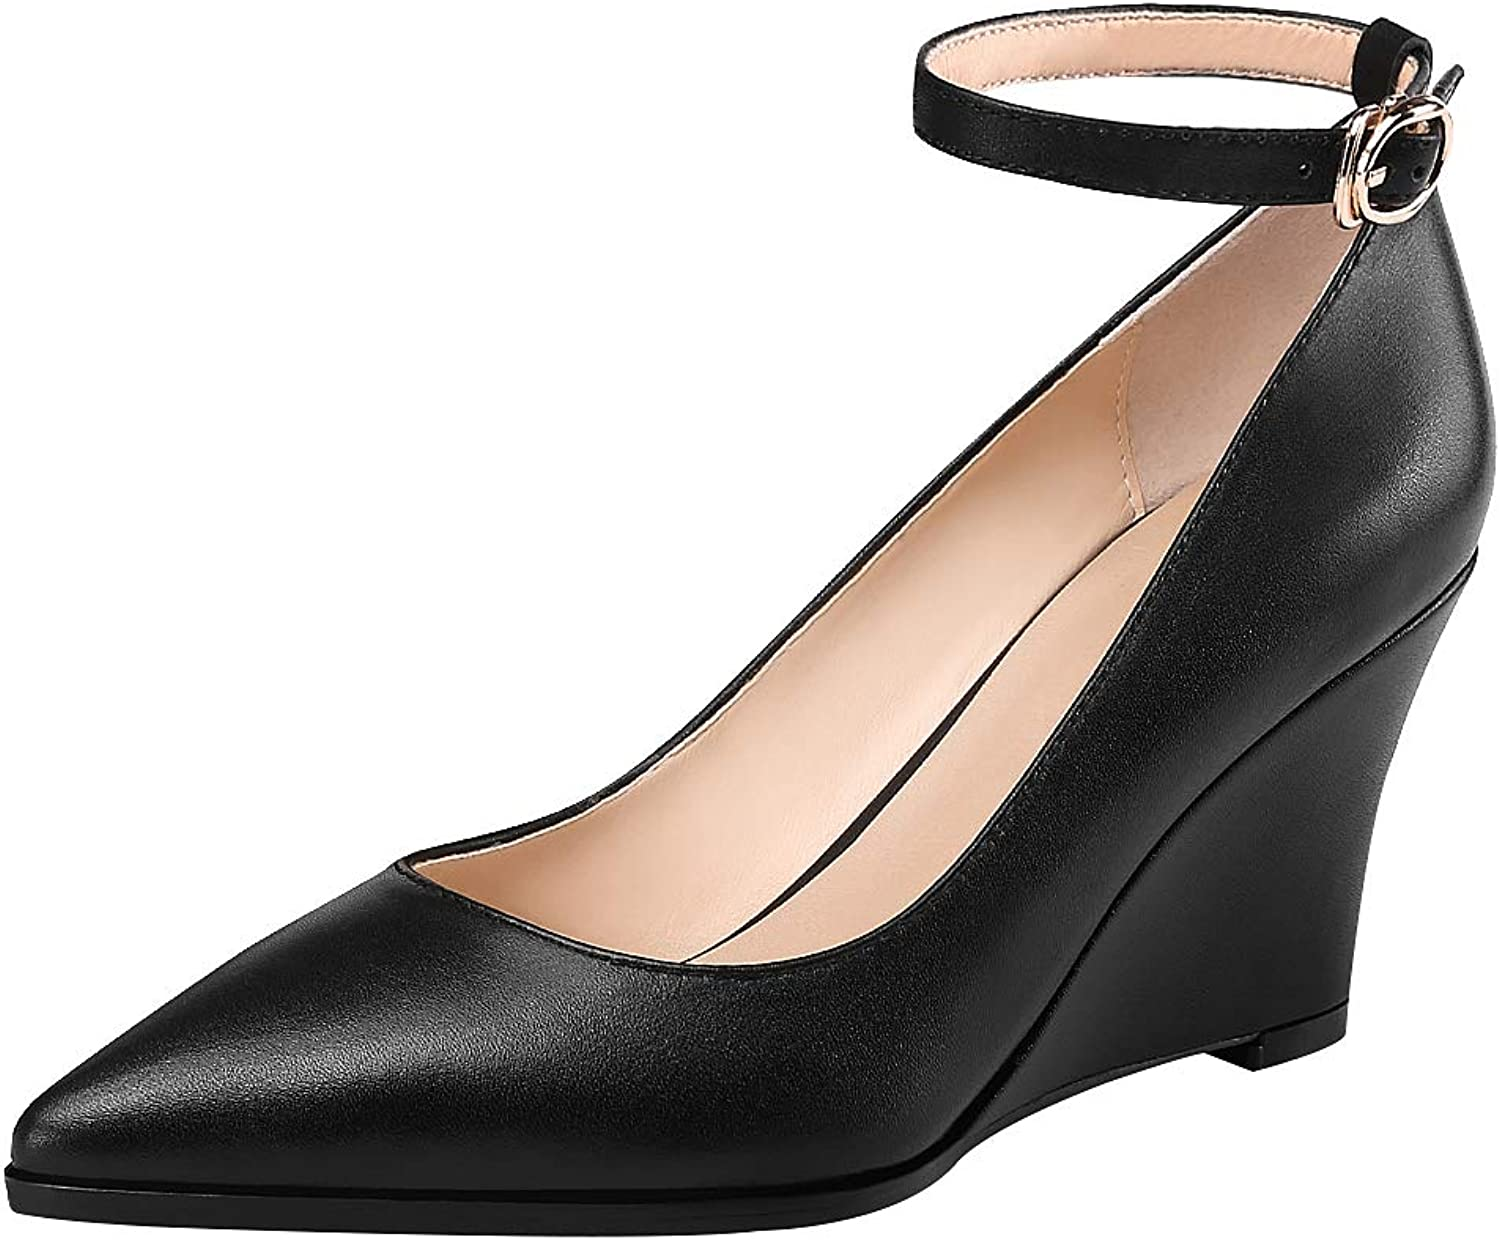 Anufer Womens Genuine Leather Pointed Toe 7.5CM Wedge Heel Ankle Strap Dress shoes Pumps